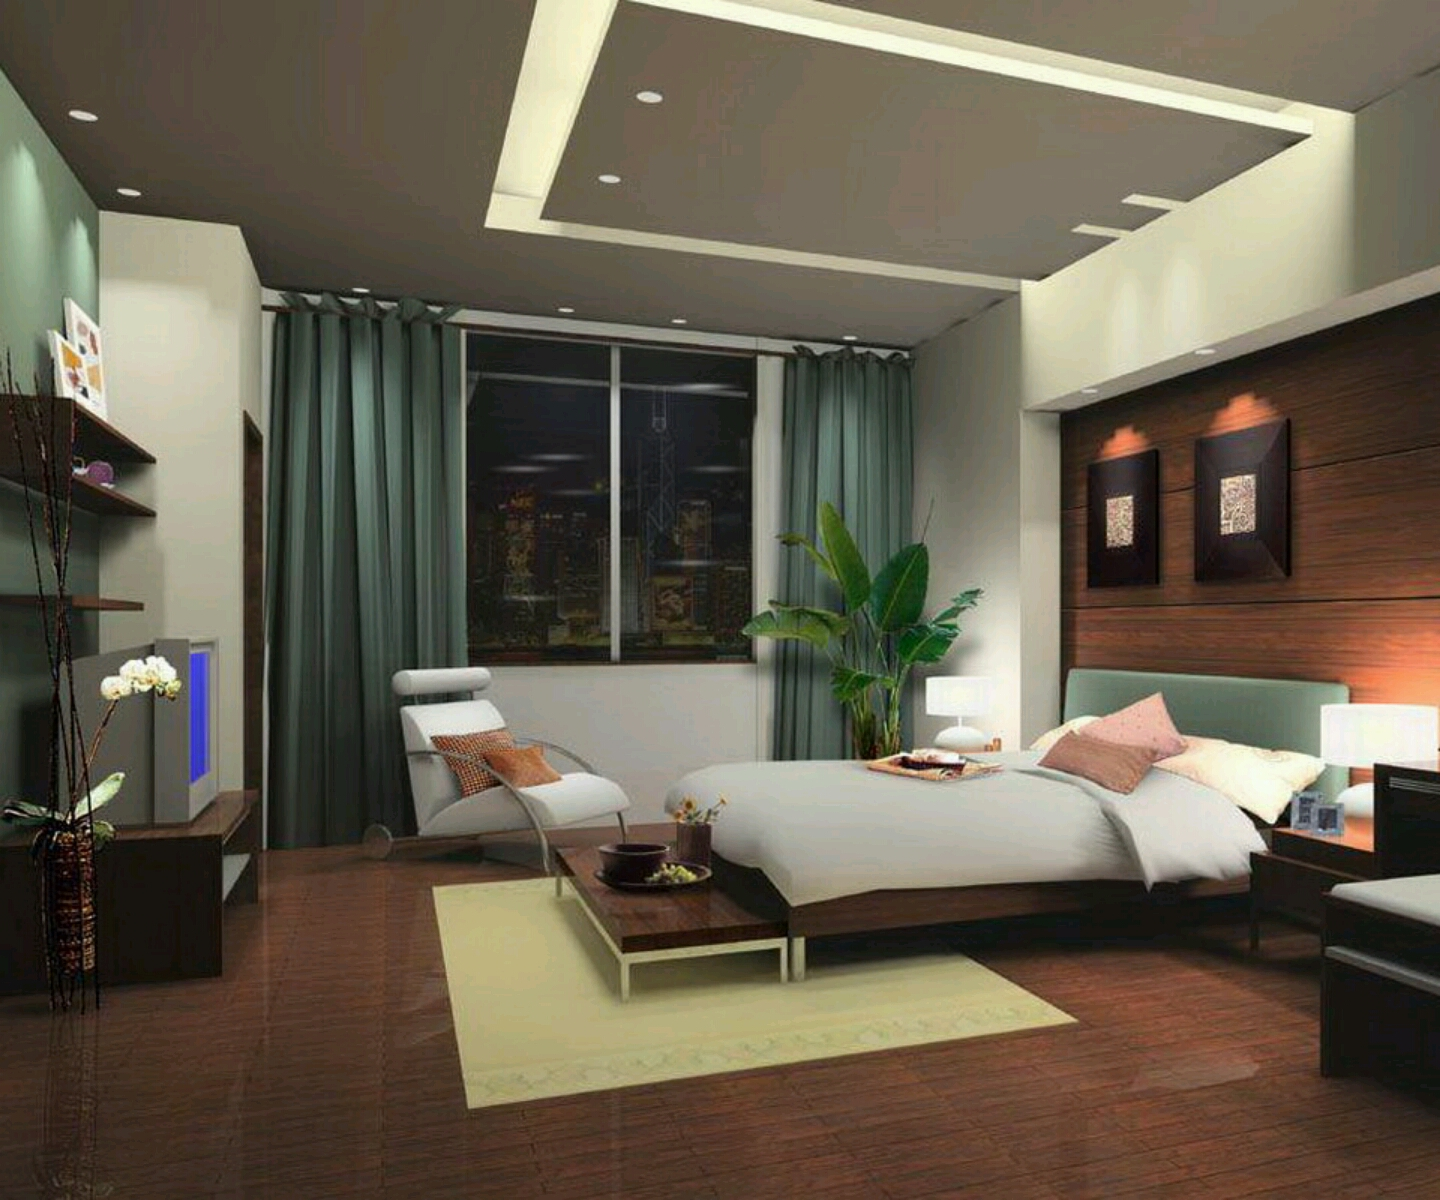 New home designs latest modern bedrooms designs best ideas for Modern bedroom ideas for small rooms